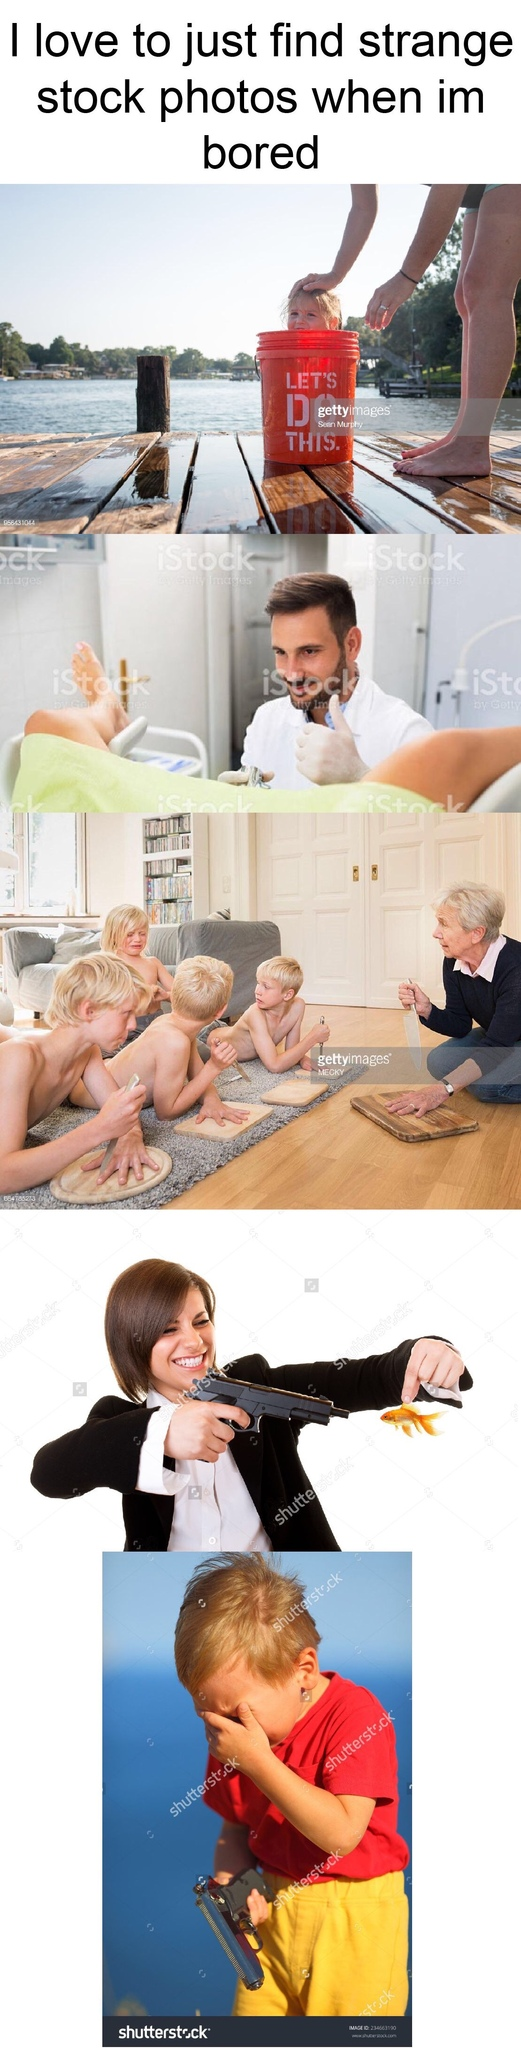 Stock photos - meme